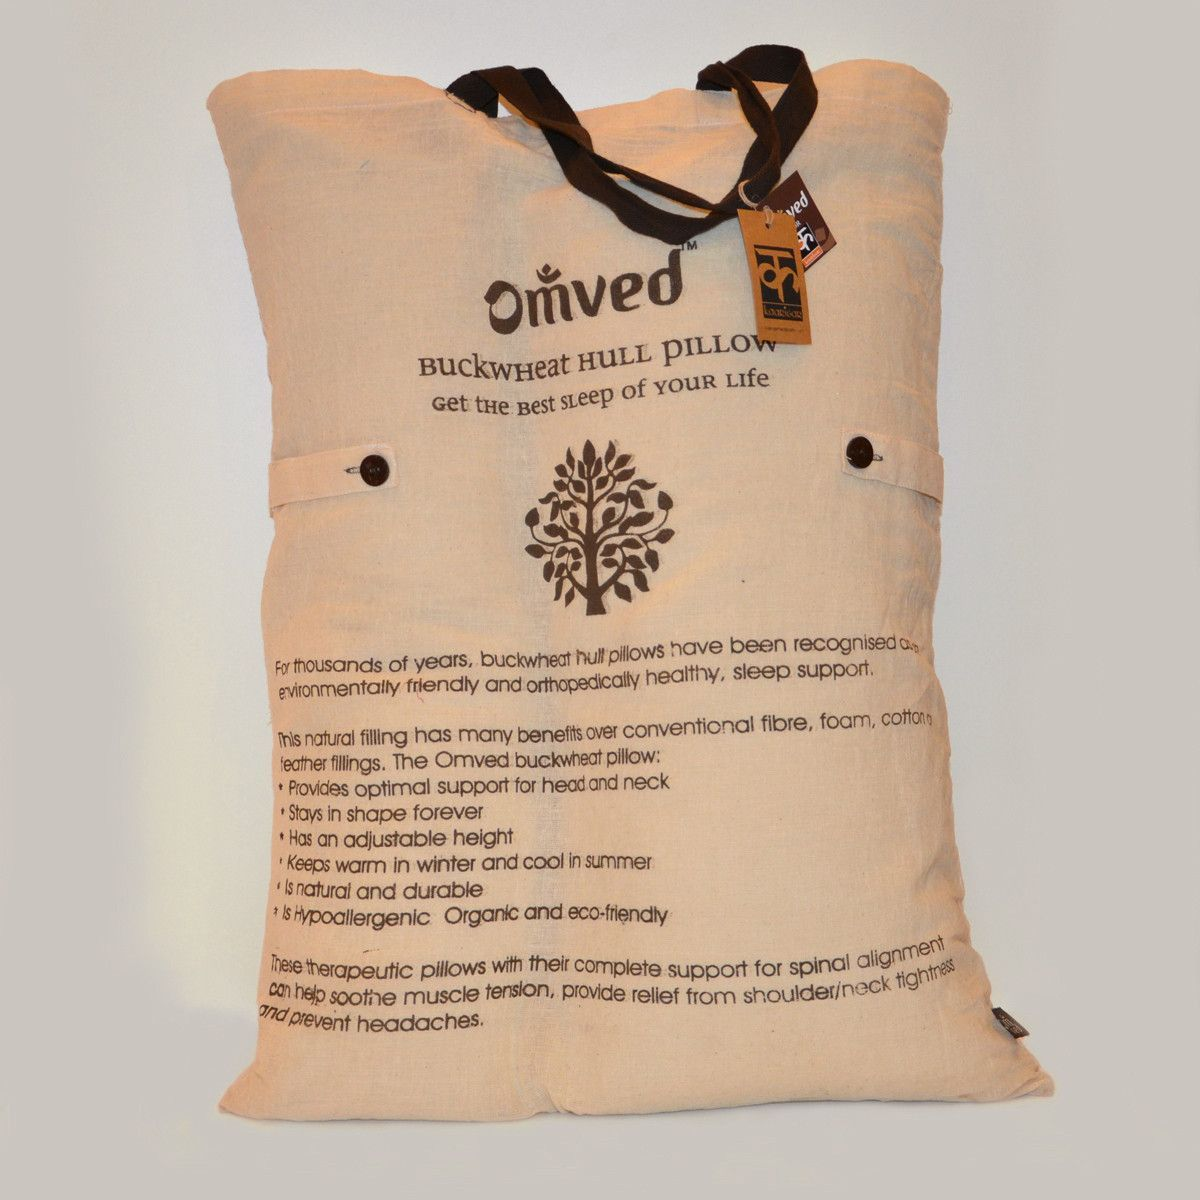 buckwheat hull pillow buckwheat hull pillow and products